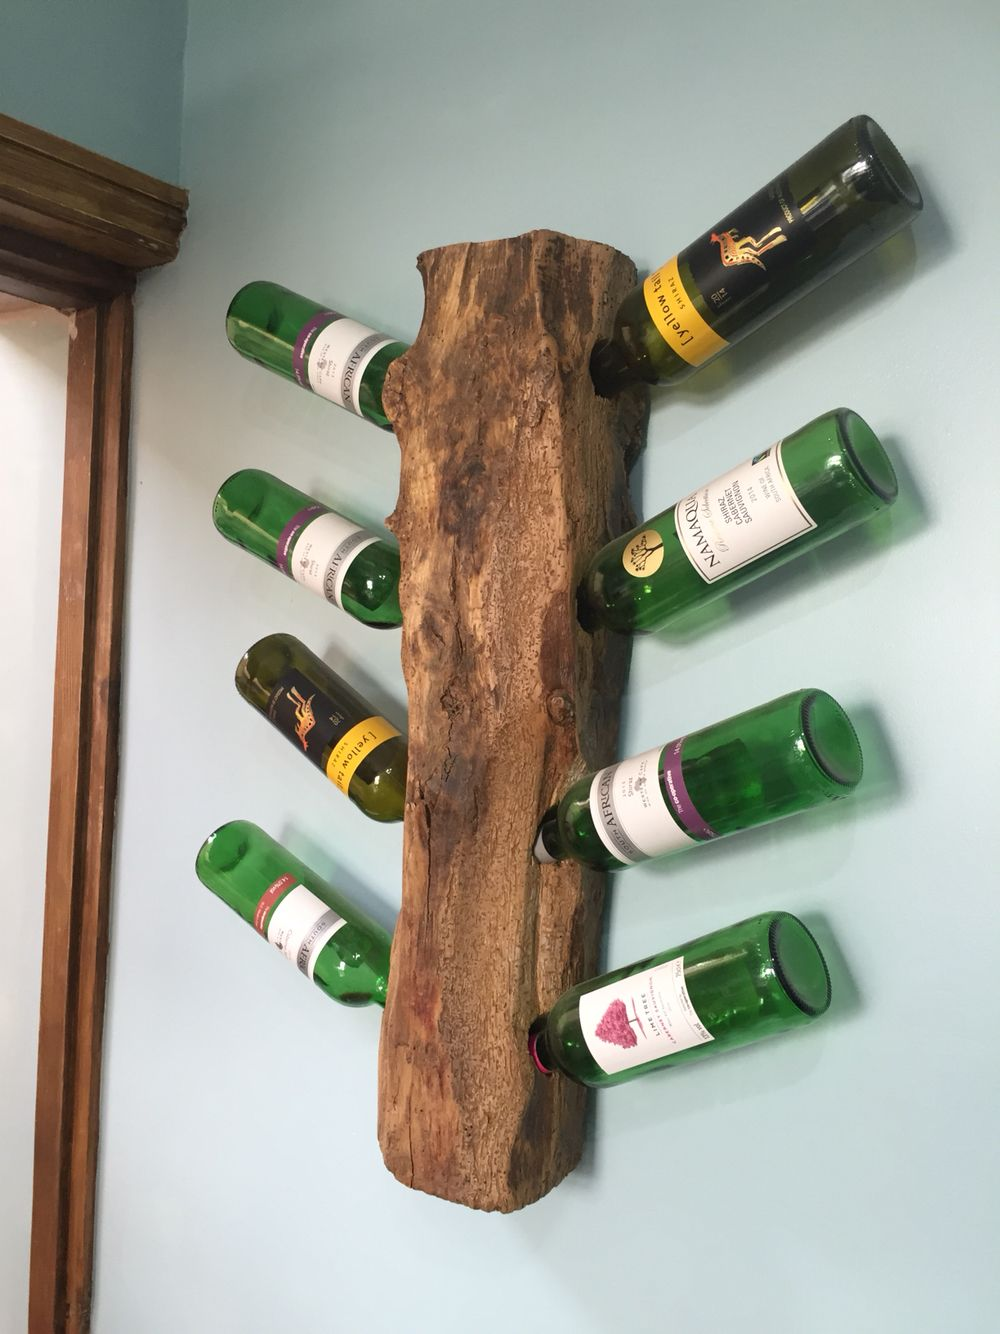 Rustic Wine rack holder that I made out of an old damaged oak roof truss that I was repairing in a 500 year old derelict renovation project!